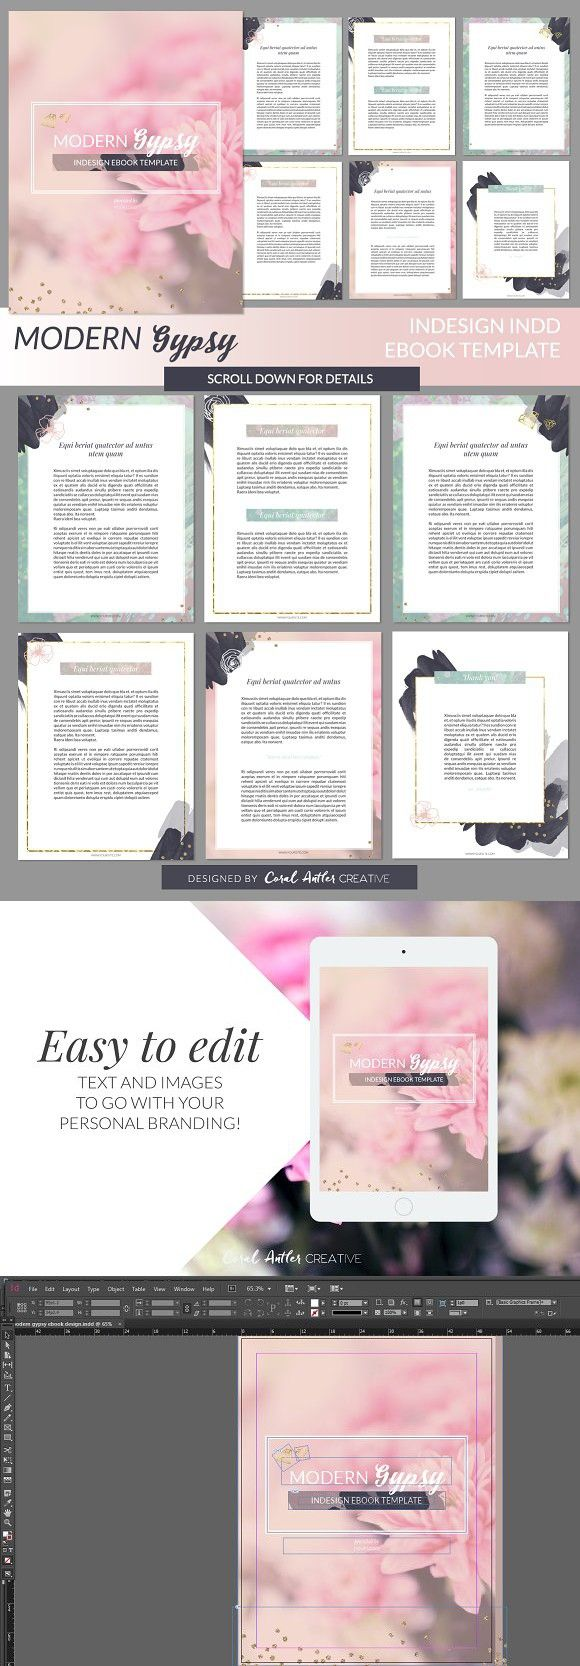 Modern Gypsy InDesign Ebook Template   Template